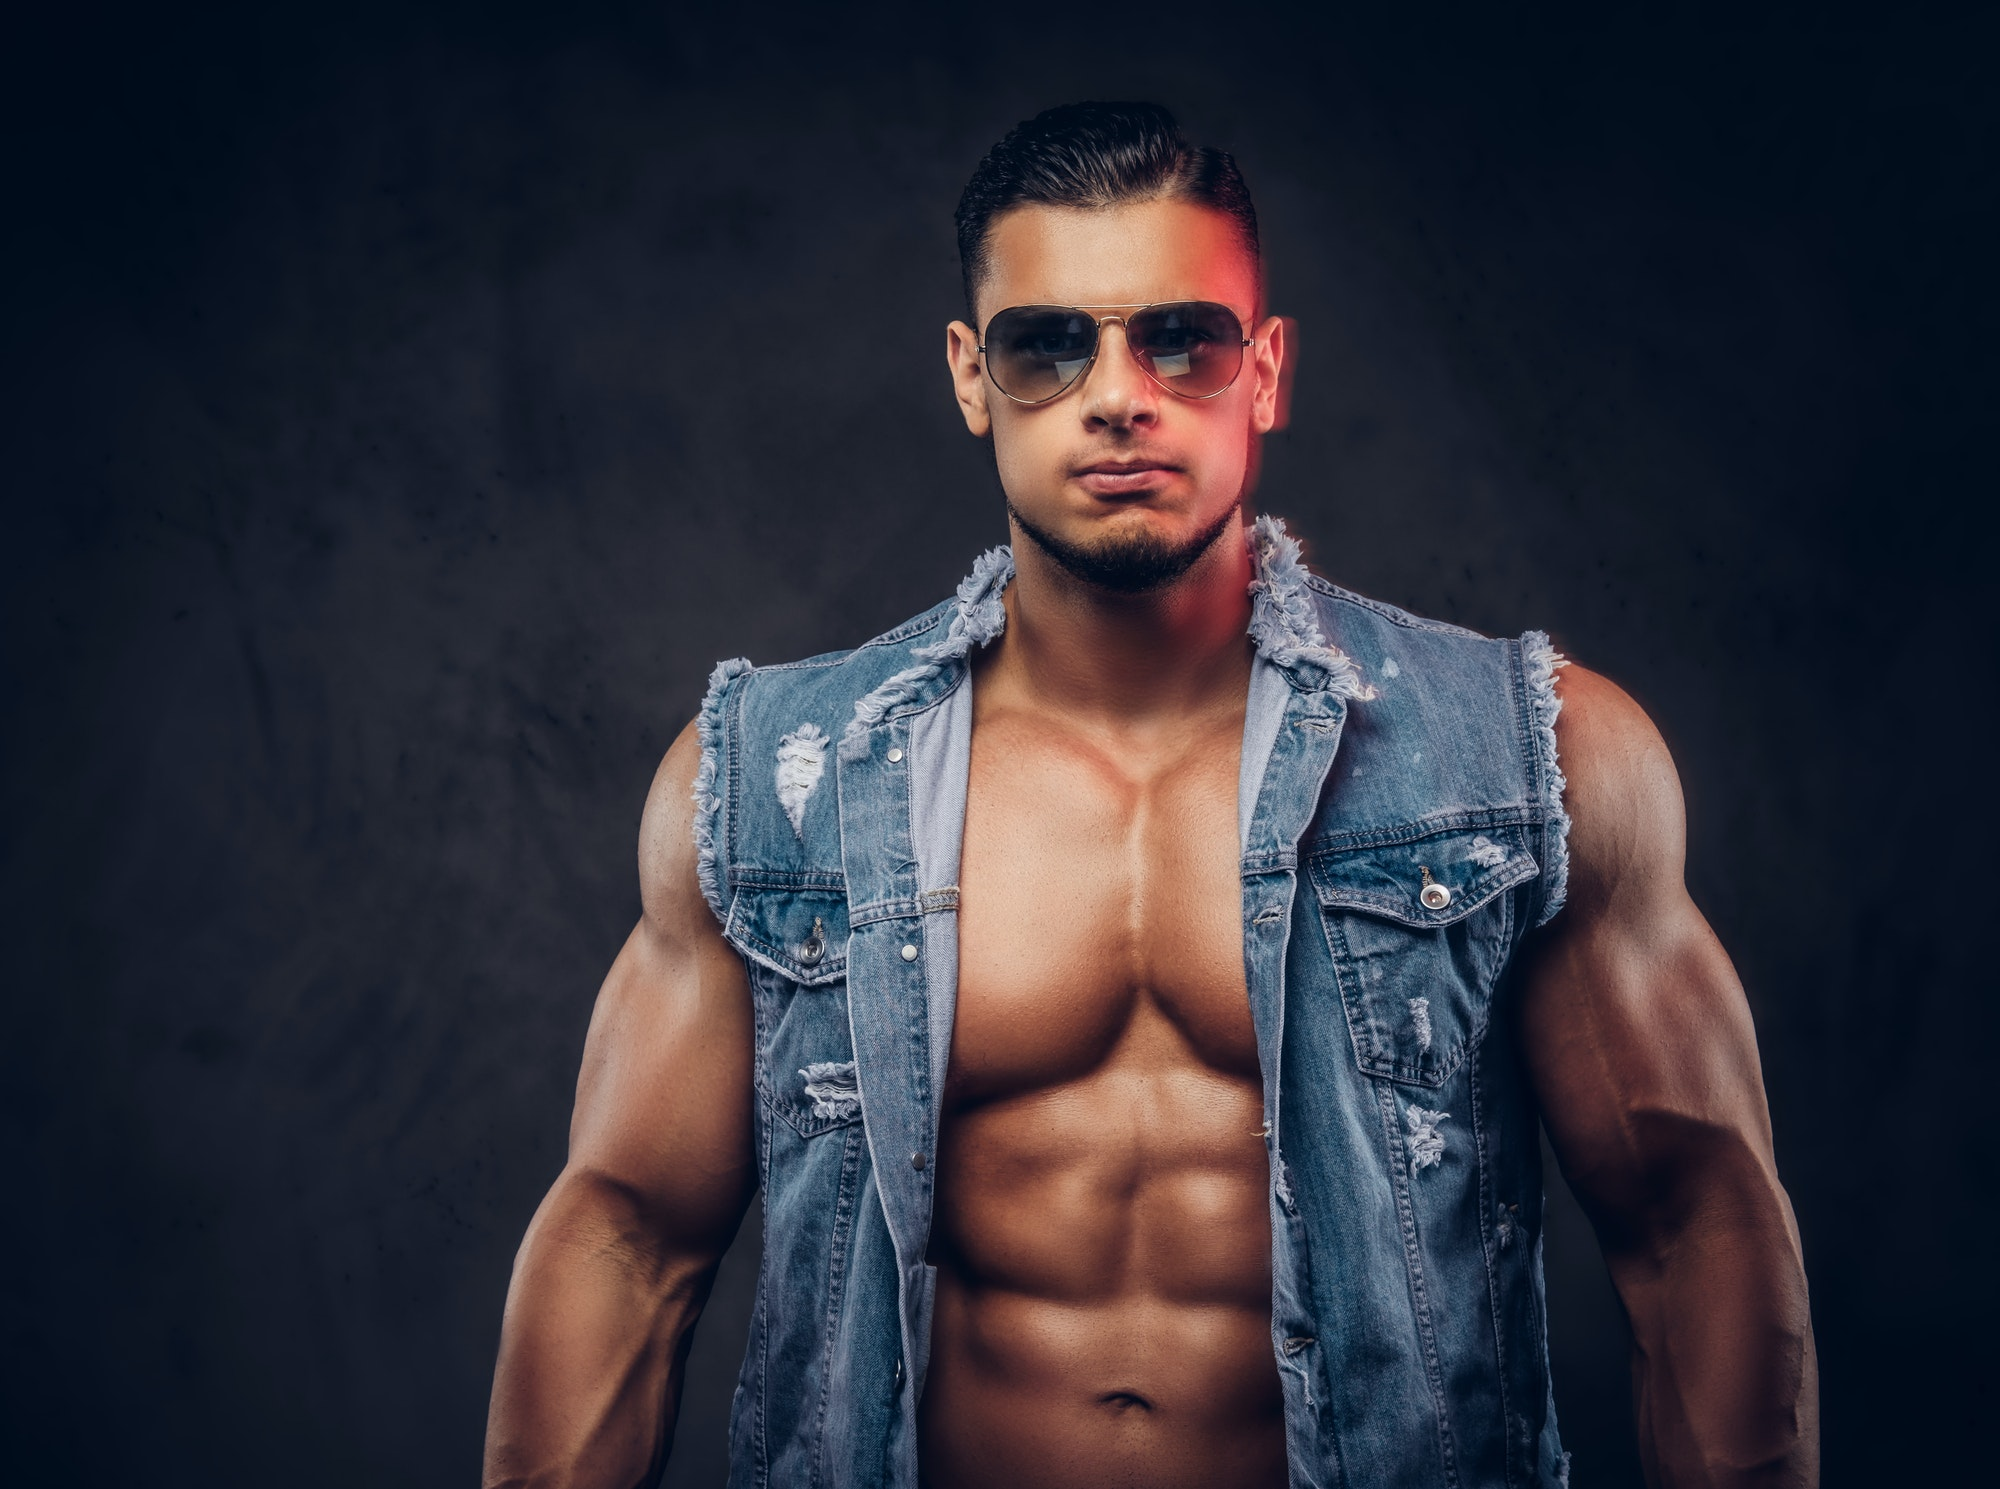 Fashionable athletic man poses in a studio.